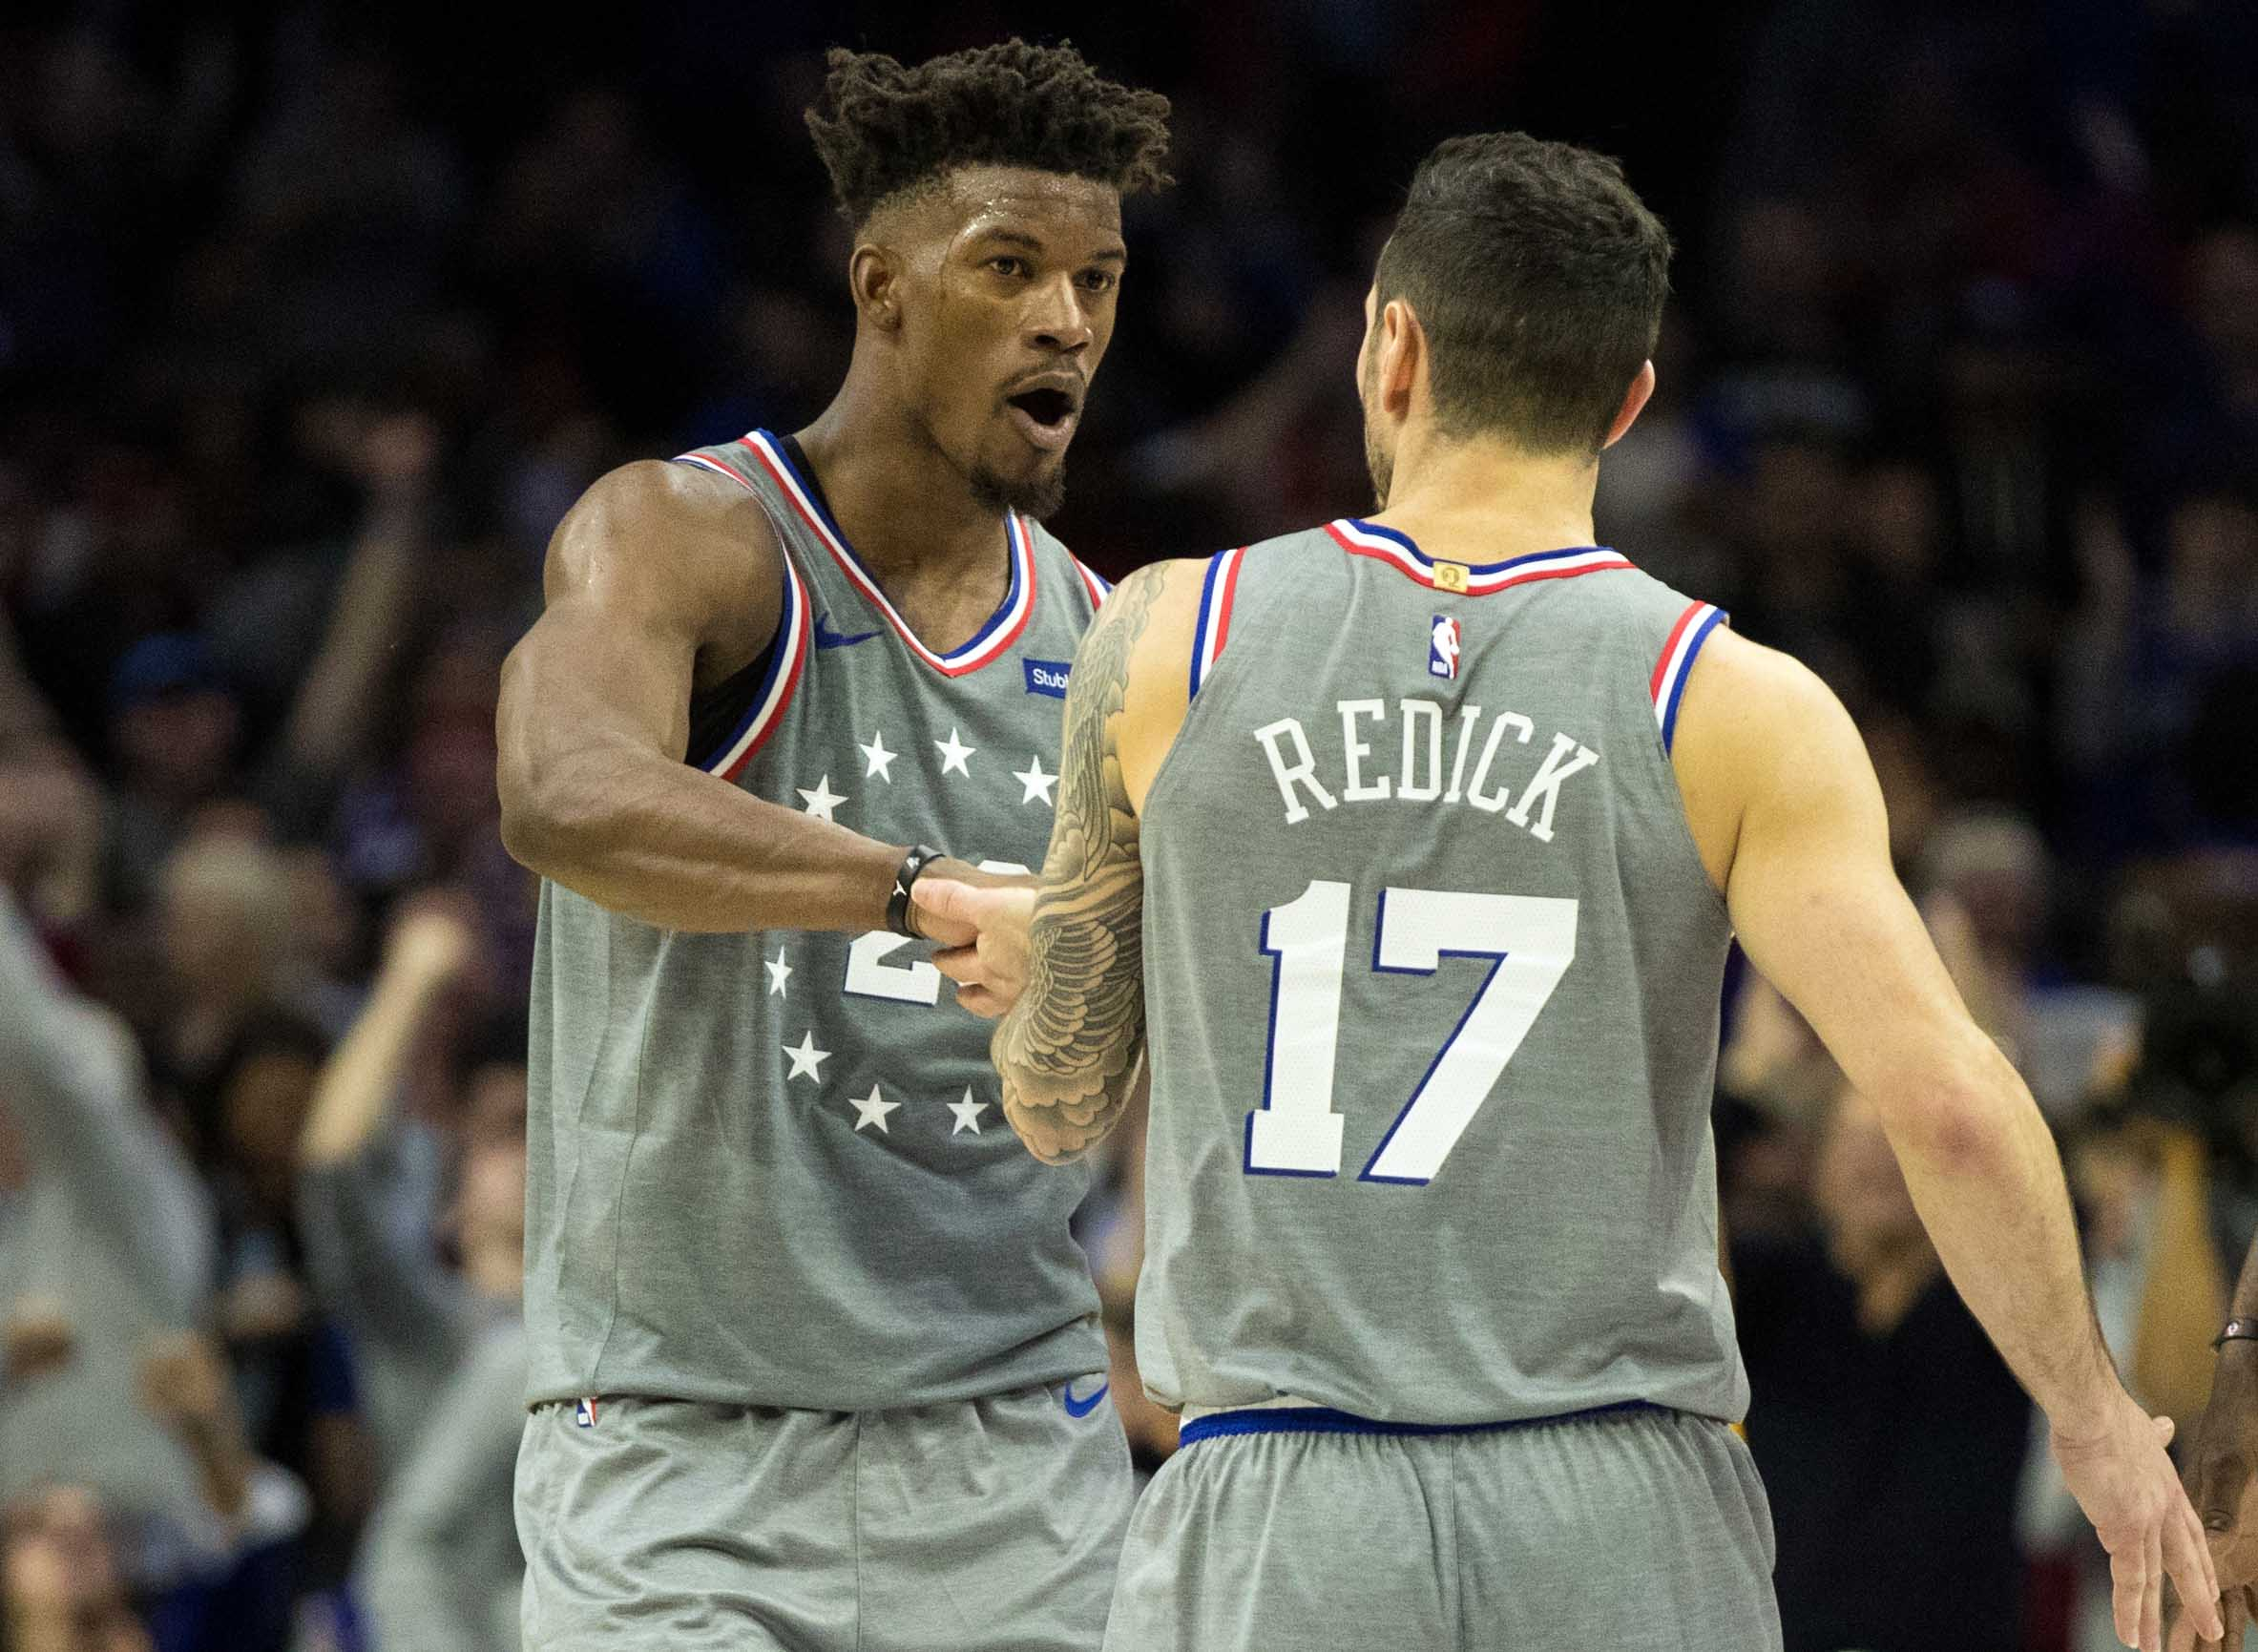 Terrible teammate Jimmy Butler wouldn't stop interrupting JJ Redick during post-game presser